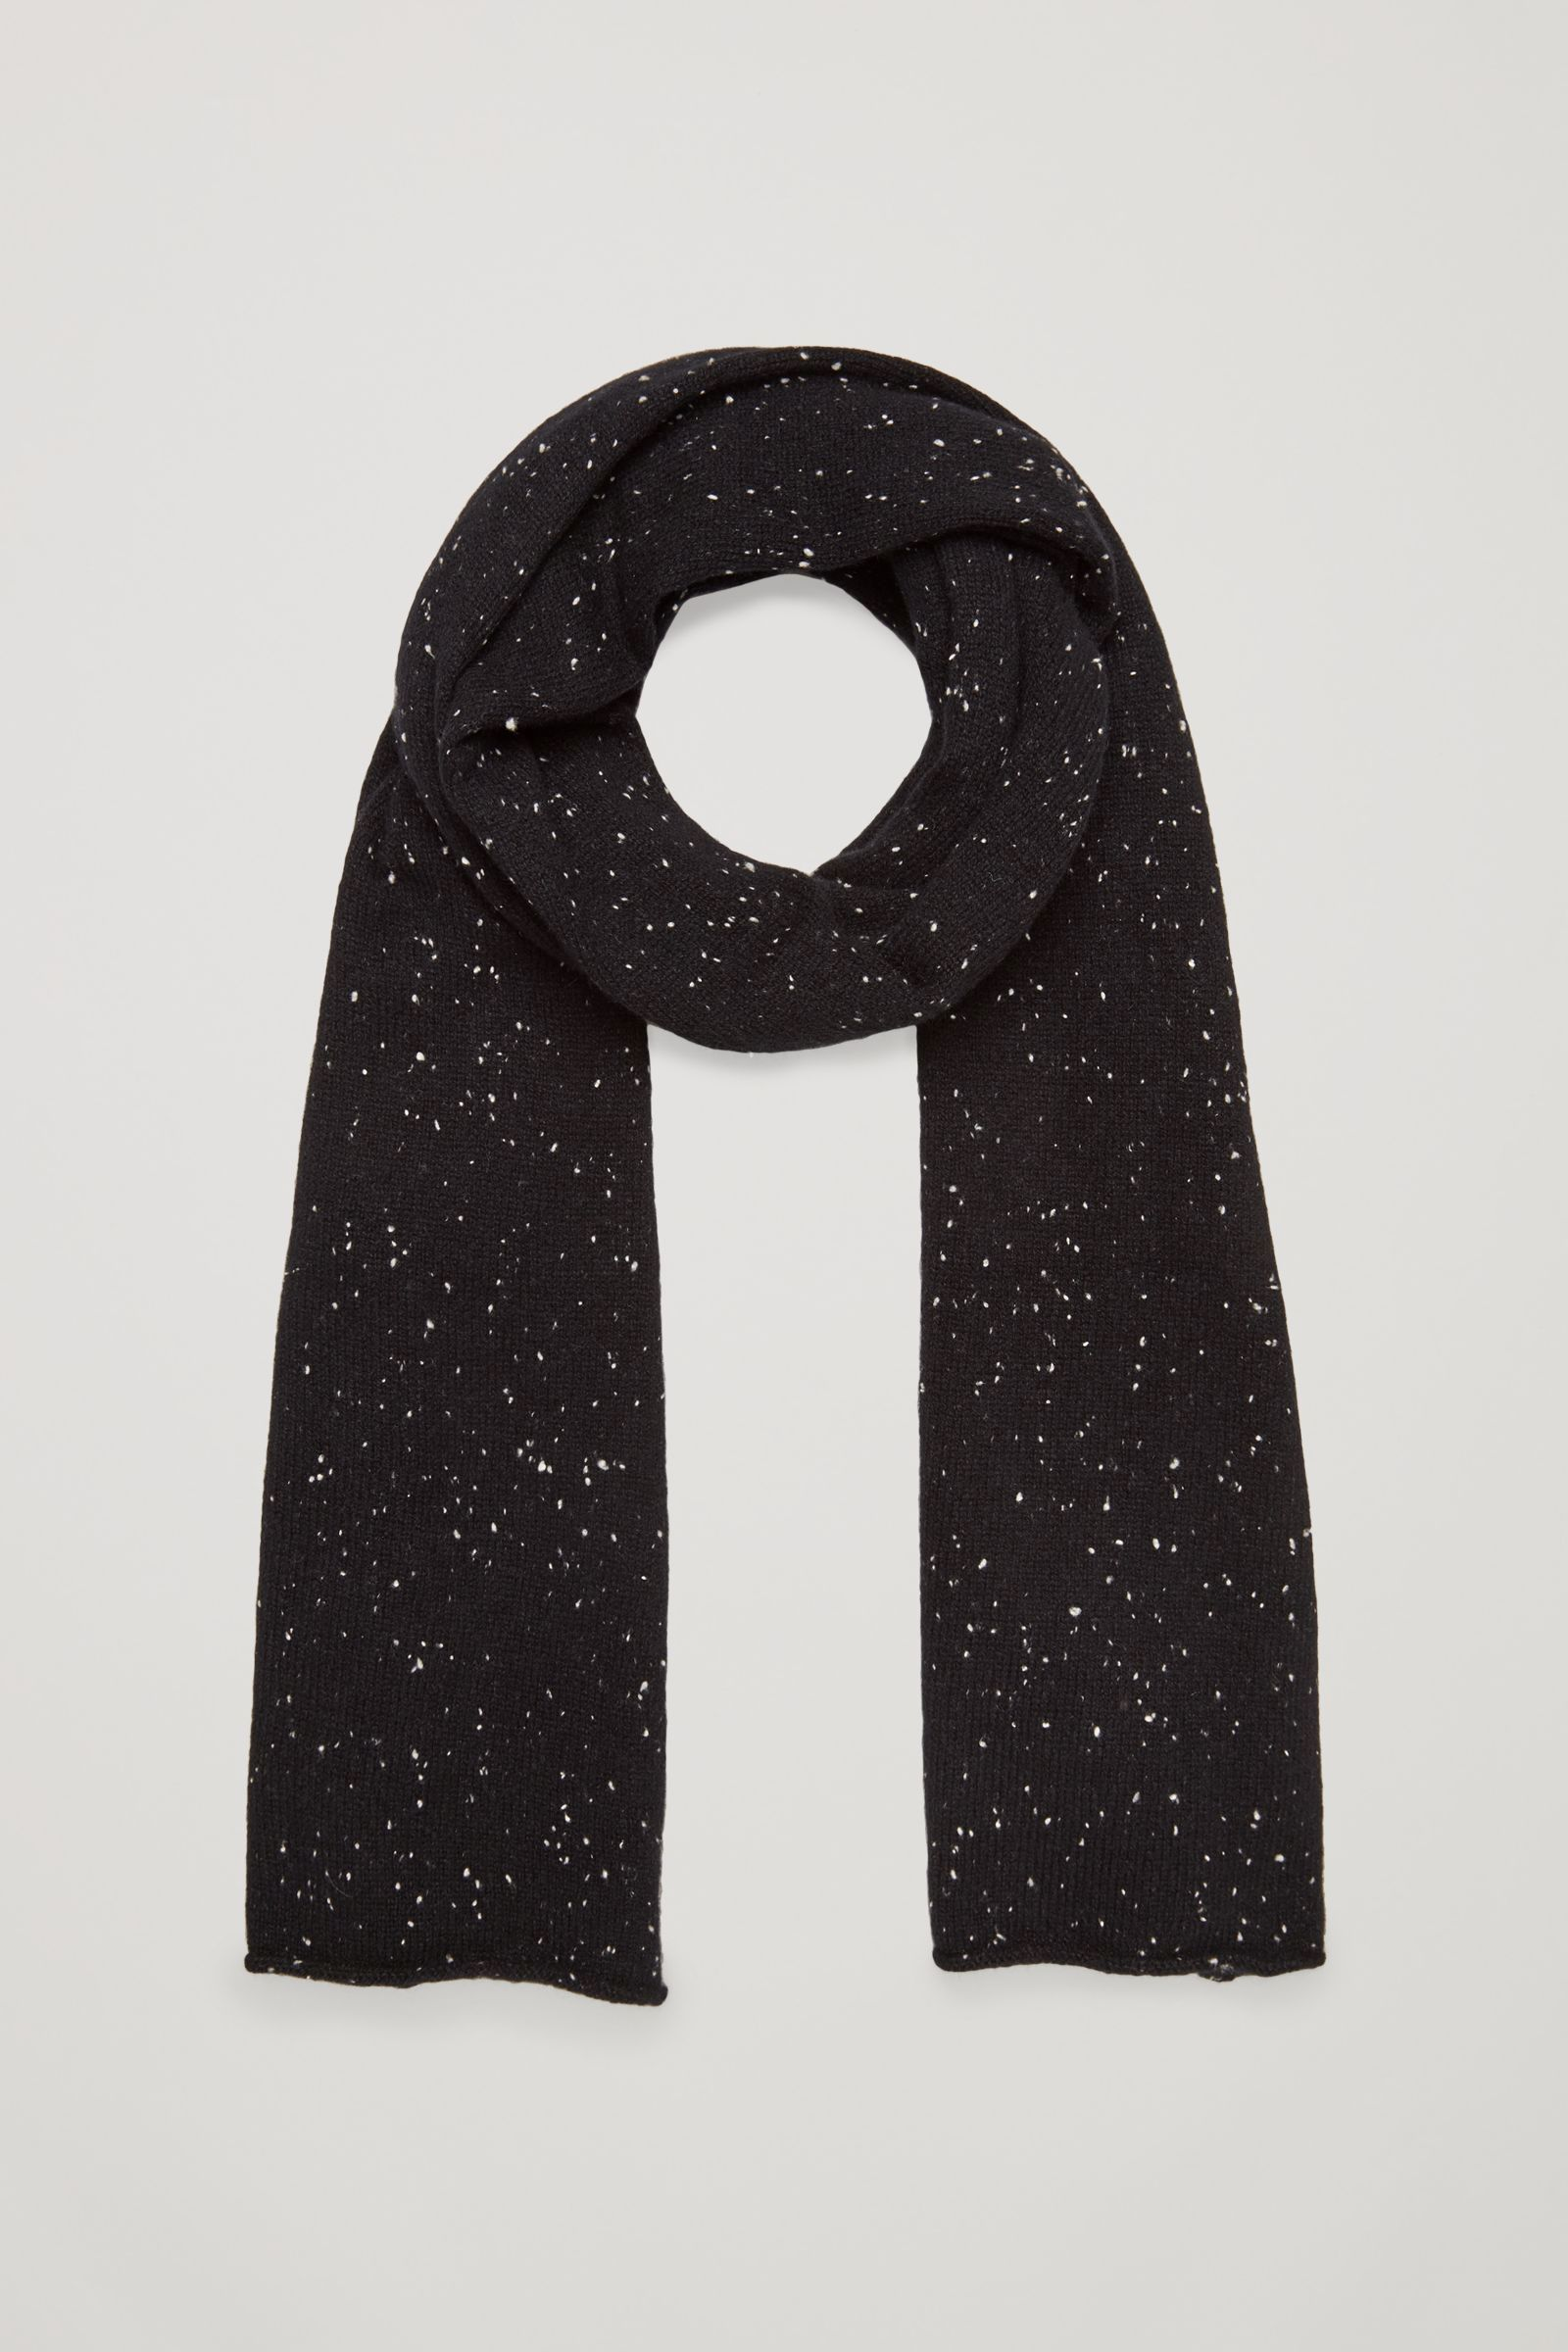 COS image 1 of Speckled cashmere scarf in Black   This, I want ... c1422157d45